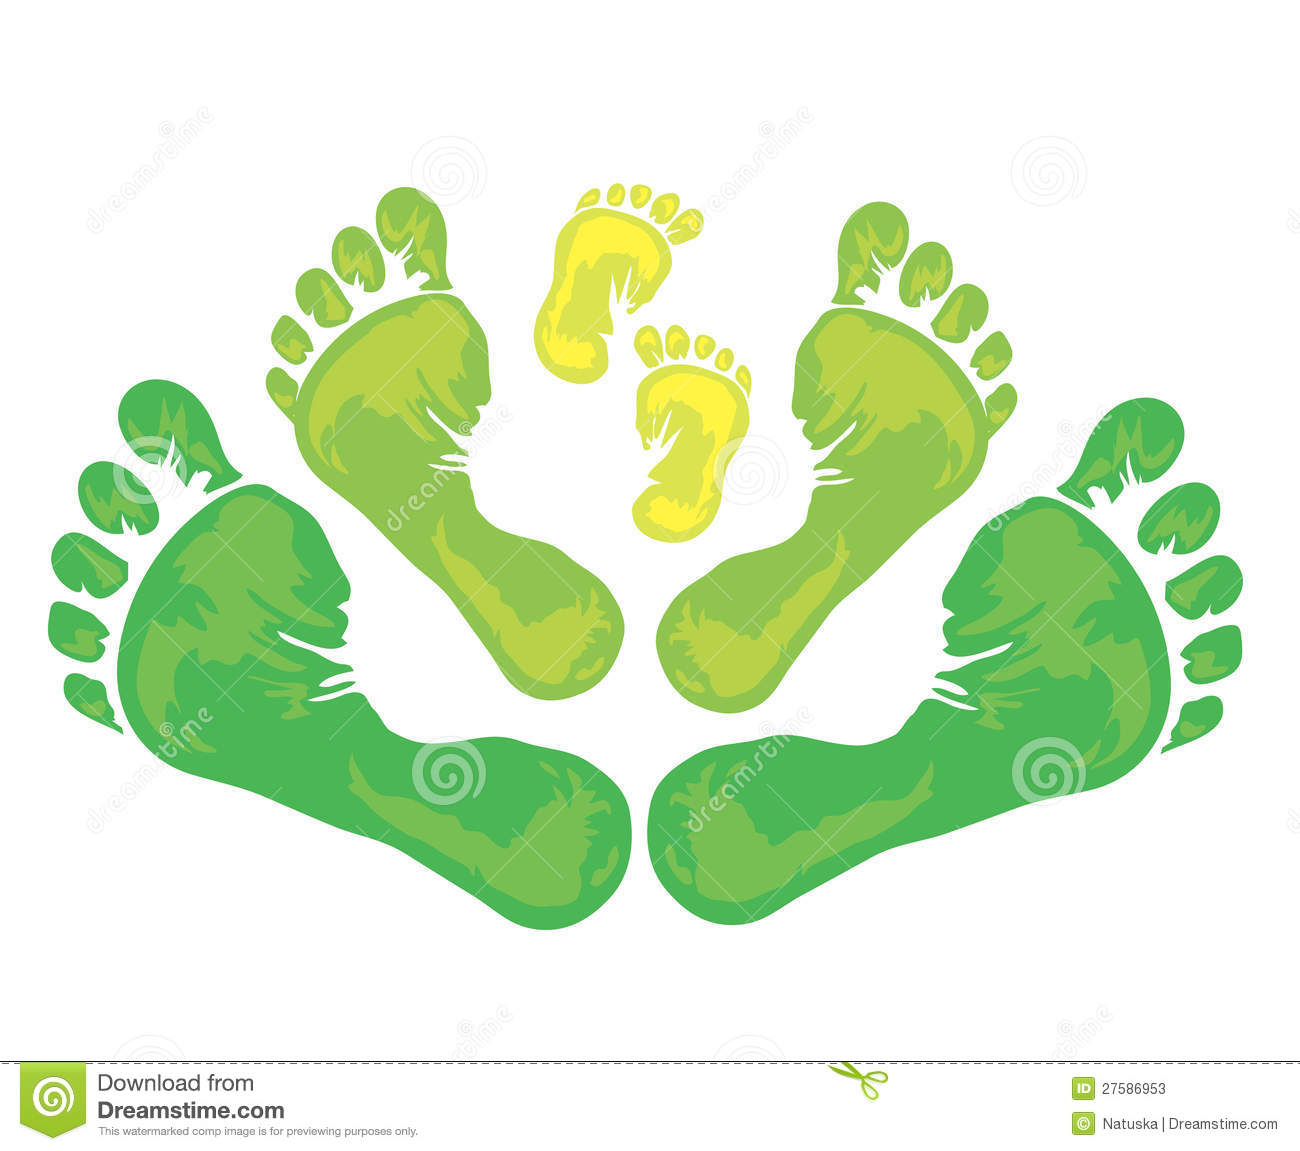 Symbol of family foot print stock illustration illustration of symbol of family foot print biocorpaavc Gallery